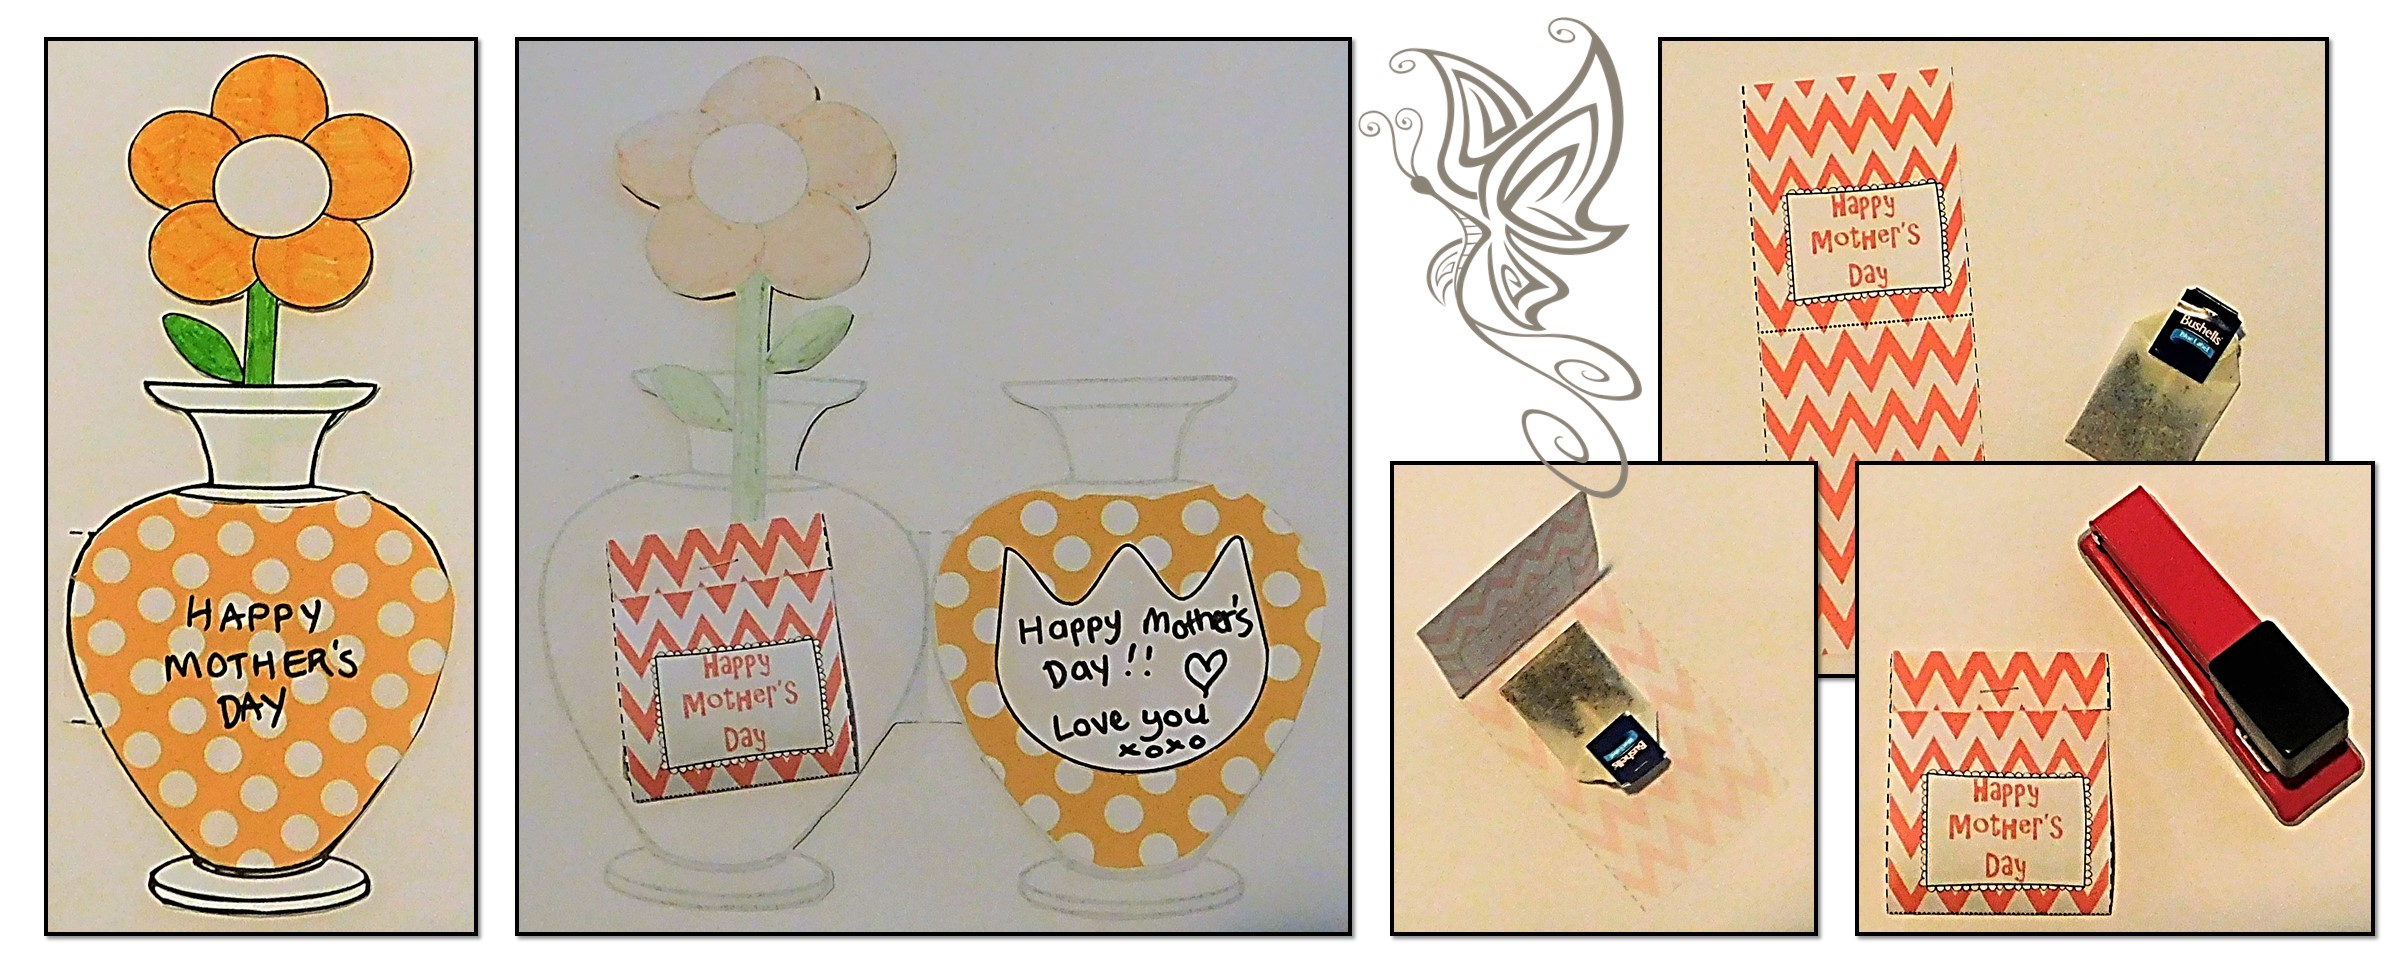 Mothers Day Card and Tea Bag Craft